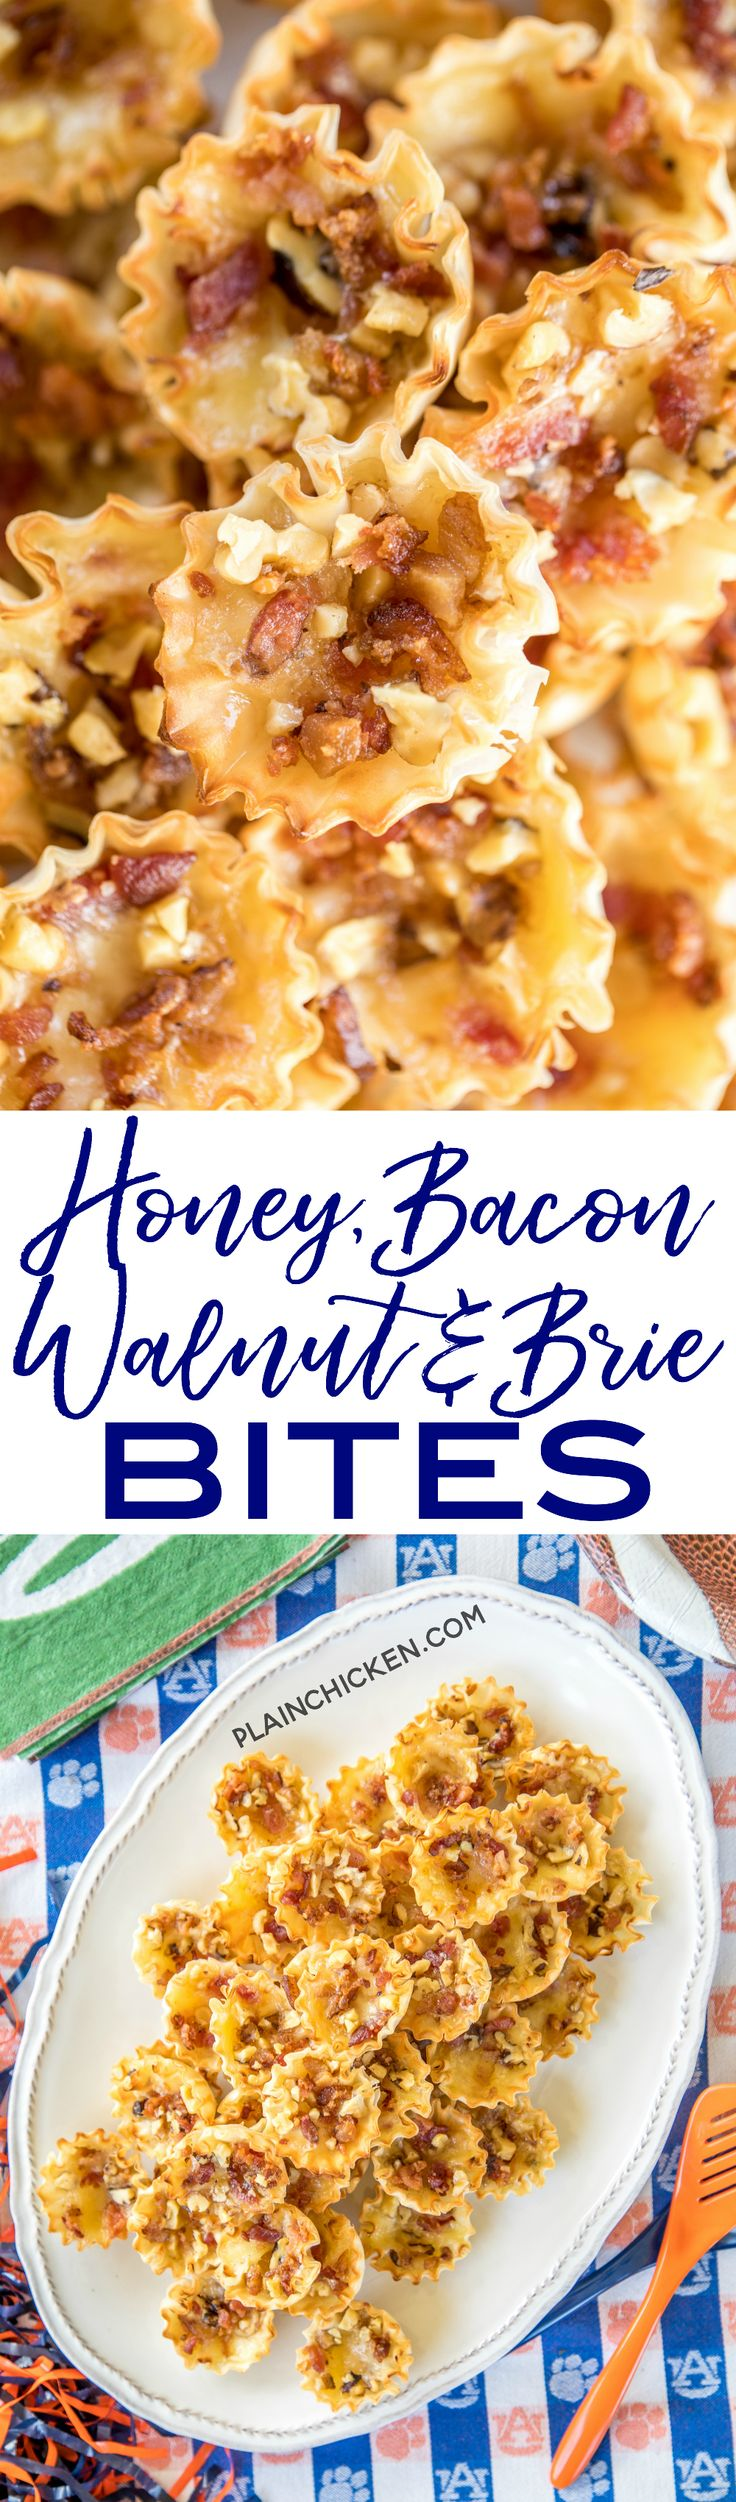 Honey Bacon Walnut and Brie Bites recipe - sweet and salty goodness!!! The flavor combination is totally addicting. Can make the bites ahead of time and refrigerate until ready to bake. Great for all your holiday parties and tailgating!! You might want to double the recipe - these cheese bites don't last long!! #appetizer #holidayappetizer #brie #cheese